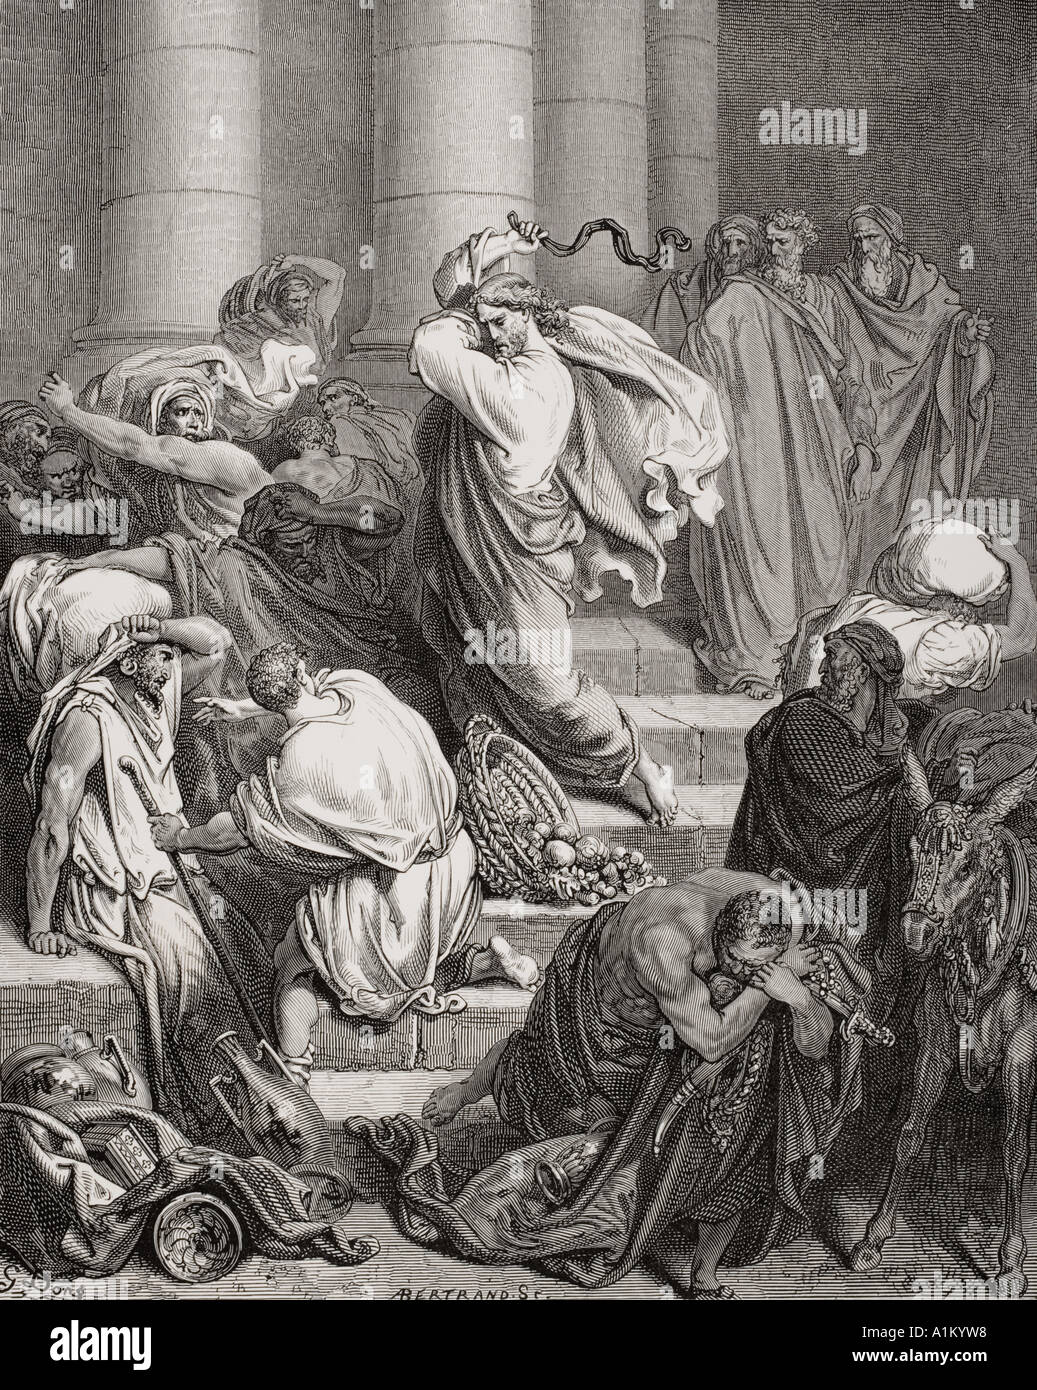 Engraving from The Dore Bible illustrating Luke xix 45 and 46 The Buyers and Sellers Driven Out of the Temple by Gustave Dore - Stock Image